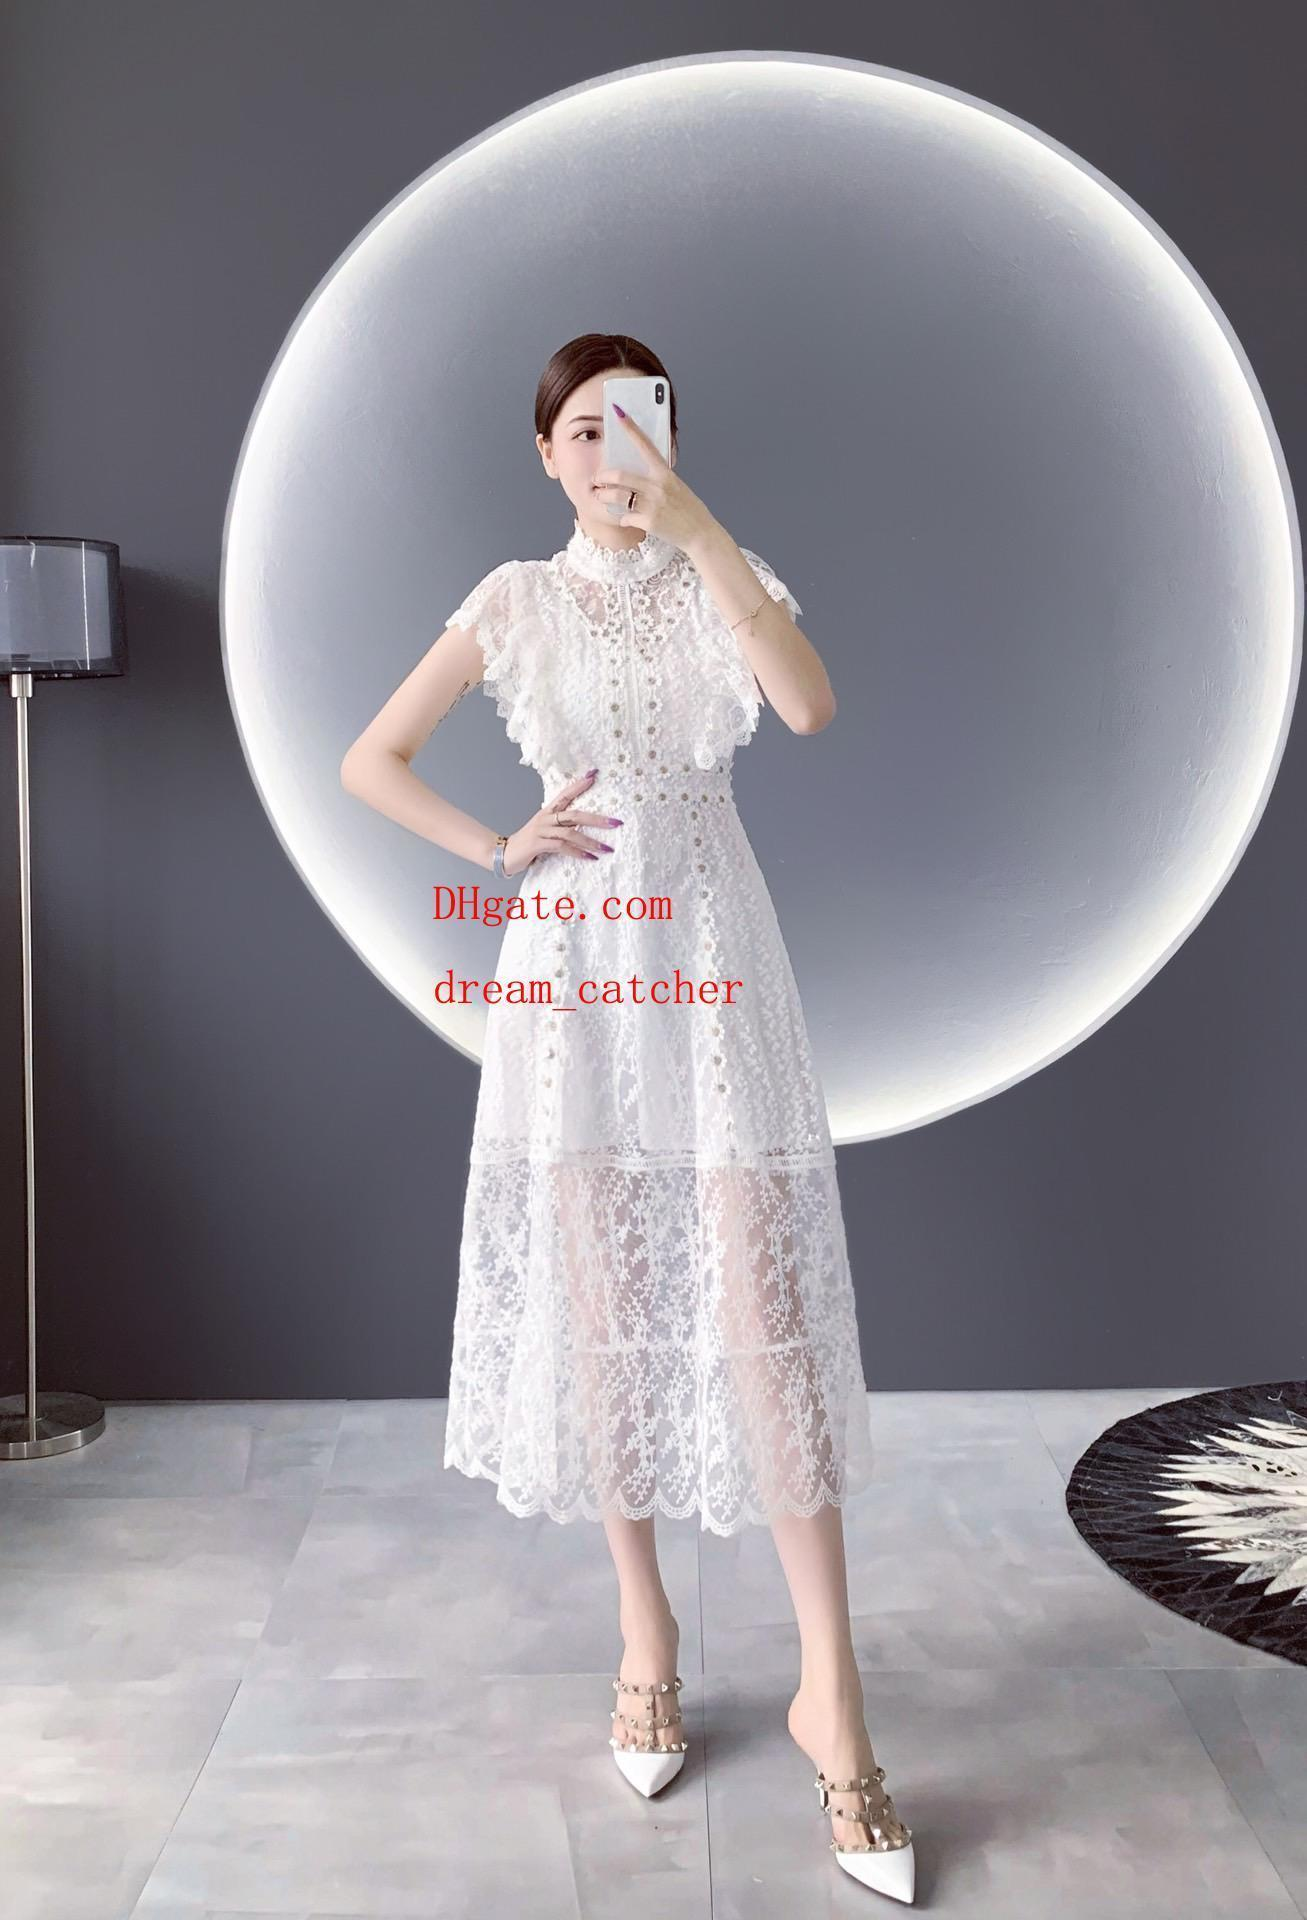 2019 Summer dresses white Pure lace crochet mesh stitching slim dress casual fashion Dresses top quality women clothes AB-13